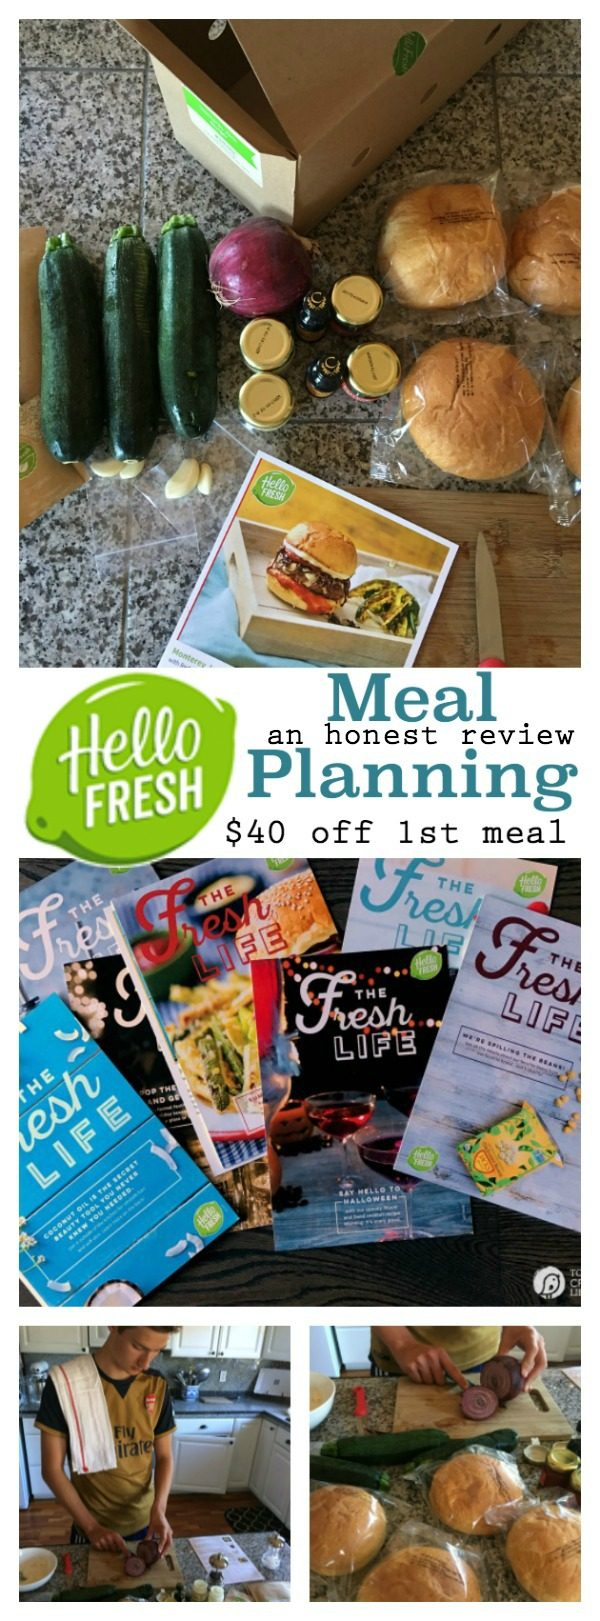 Hello Fresh Meal Delivery - An Honest Review | Meal plan delivery seems to be the trend. Find out my thoughts on Hello Fresh. This was a great way to get teen boys cooking in the kitchen!